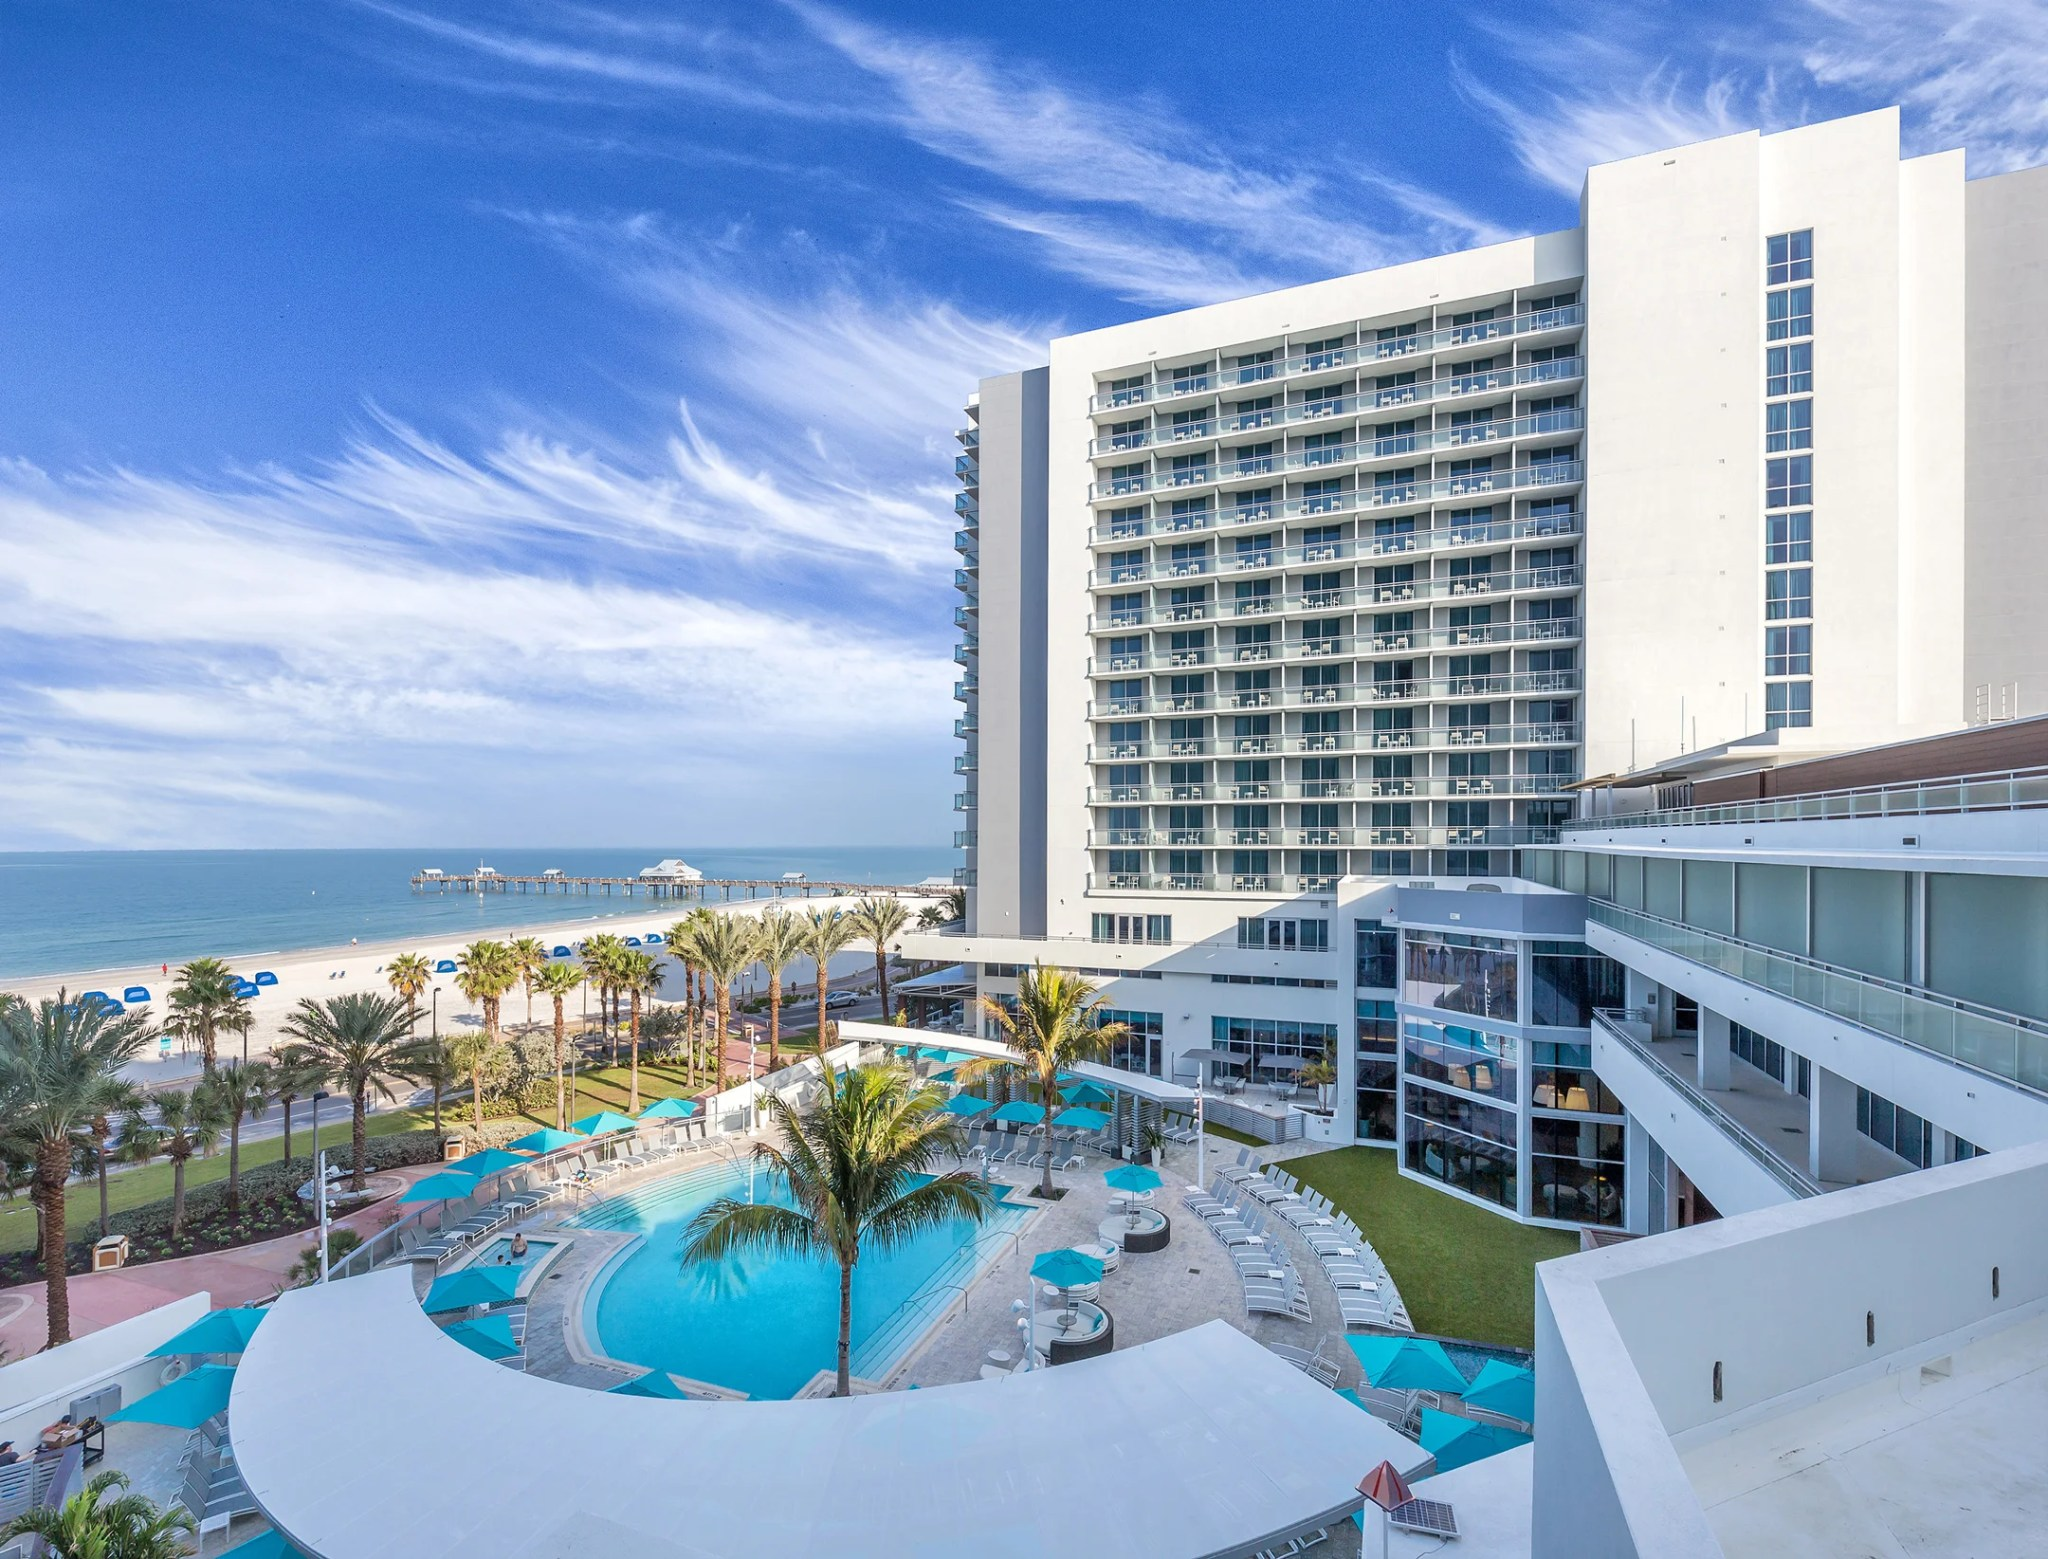 Wyndham Grand Clearwater (Photo courtesy of hotel)